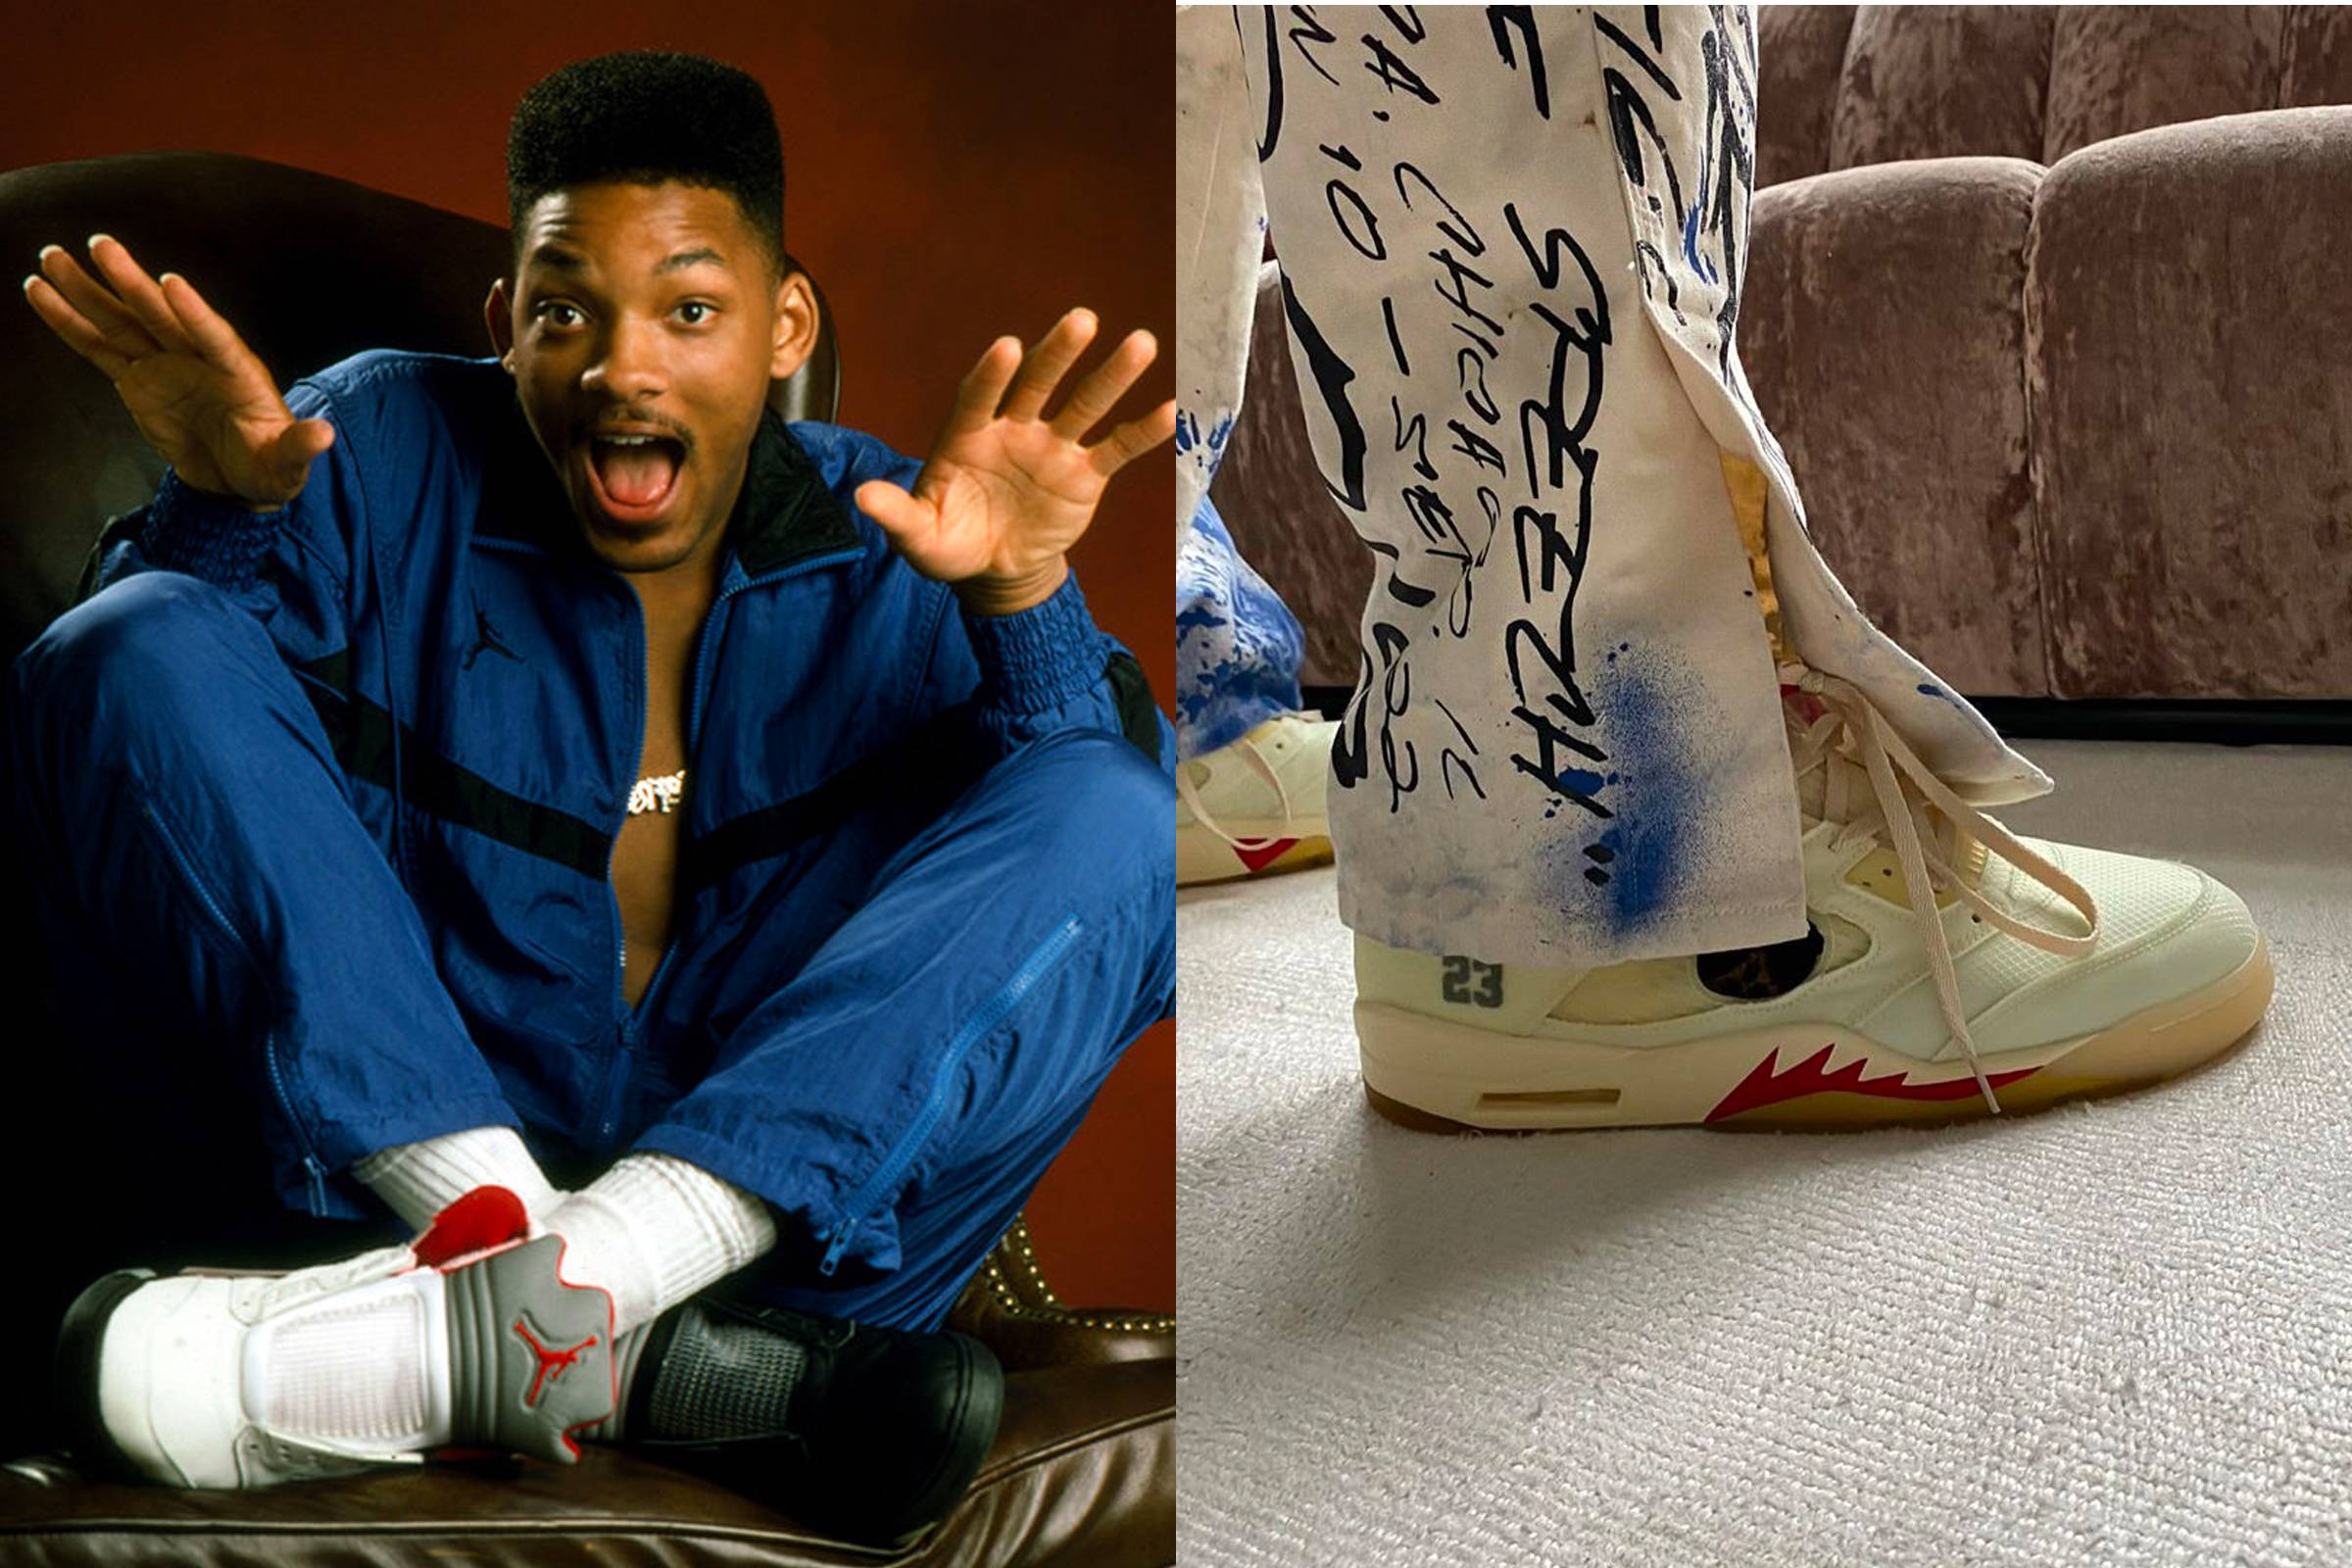 Basketball Sneakers and Early Sneaker Tech